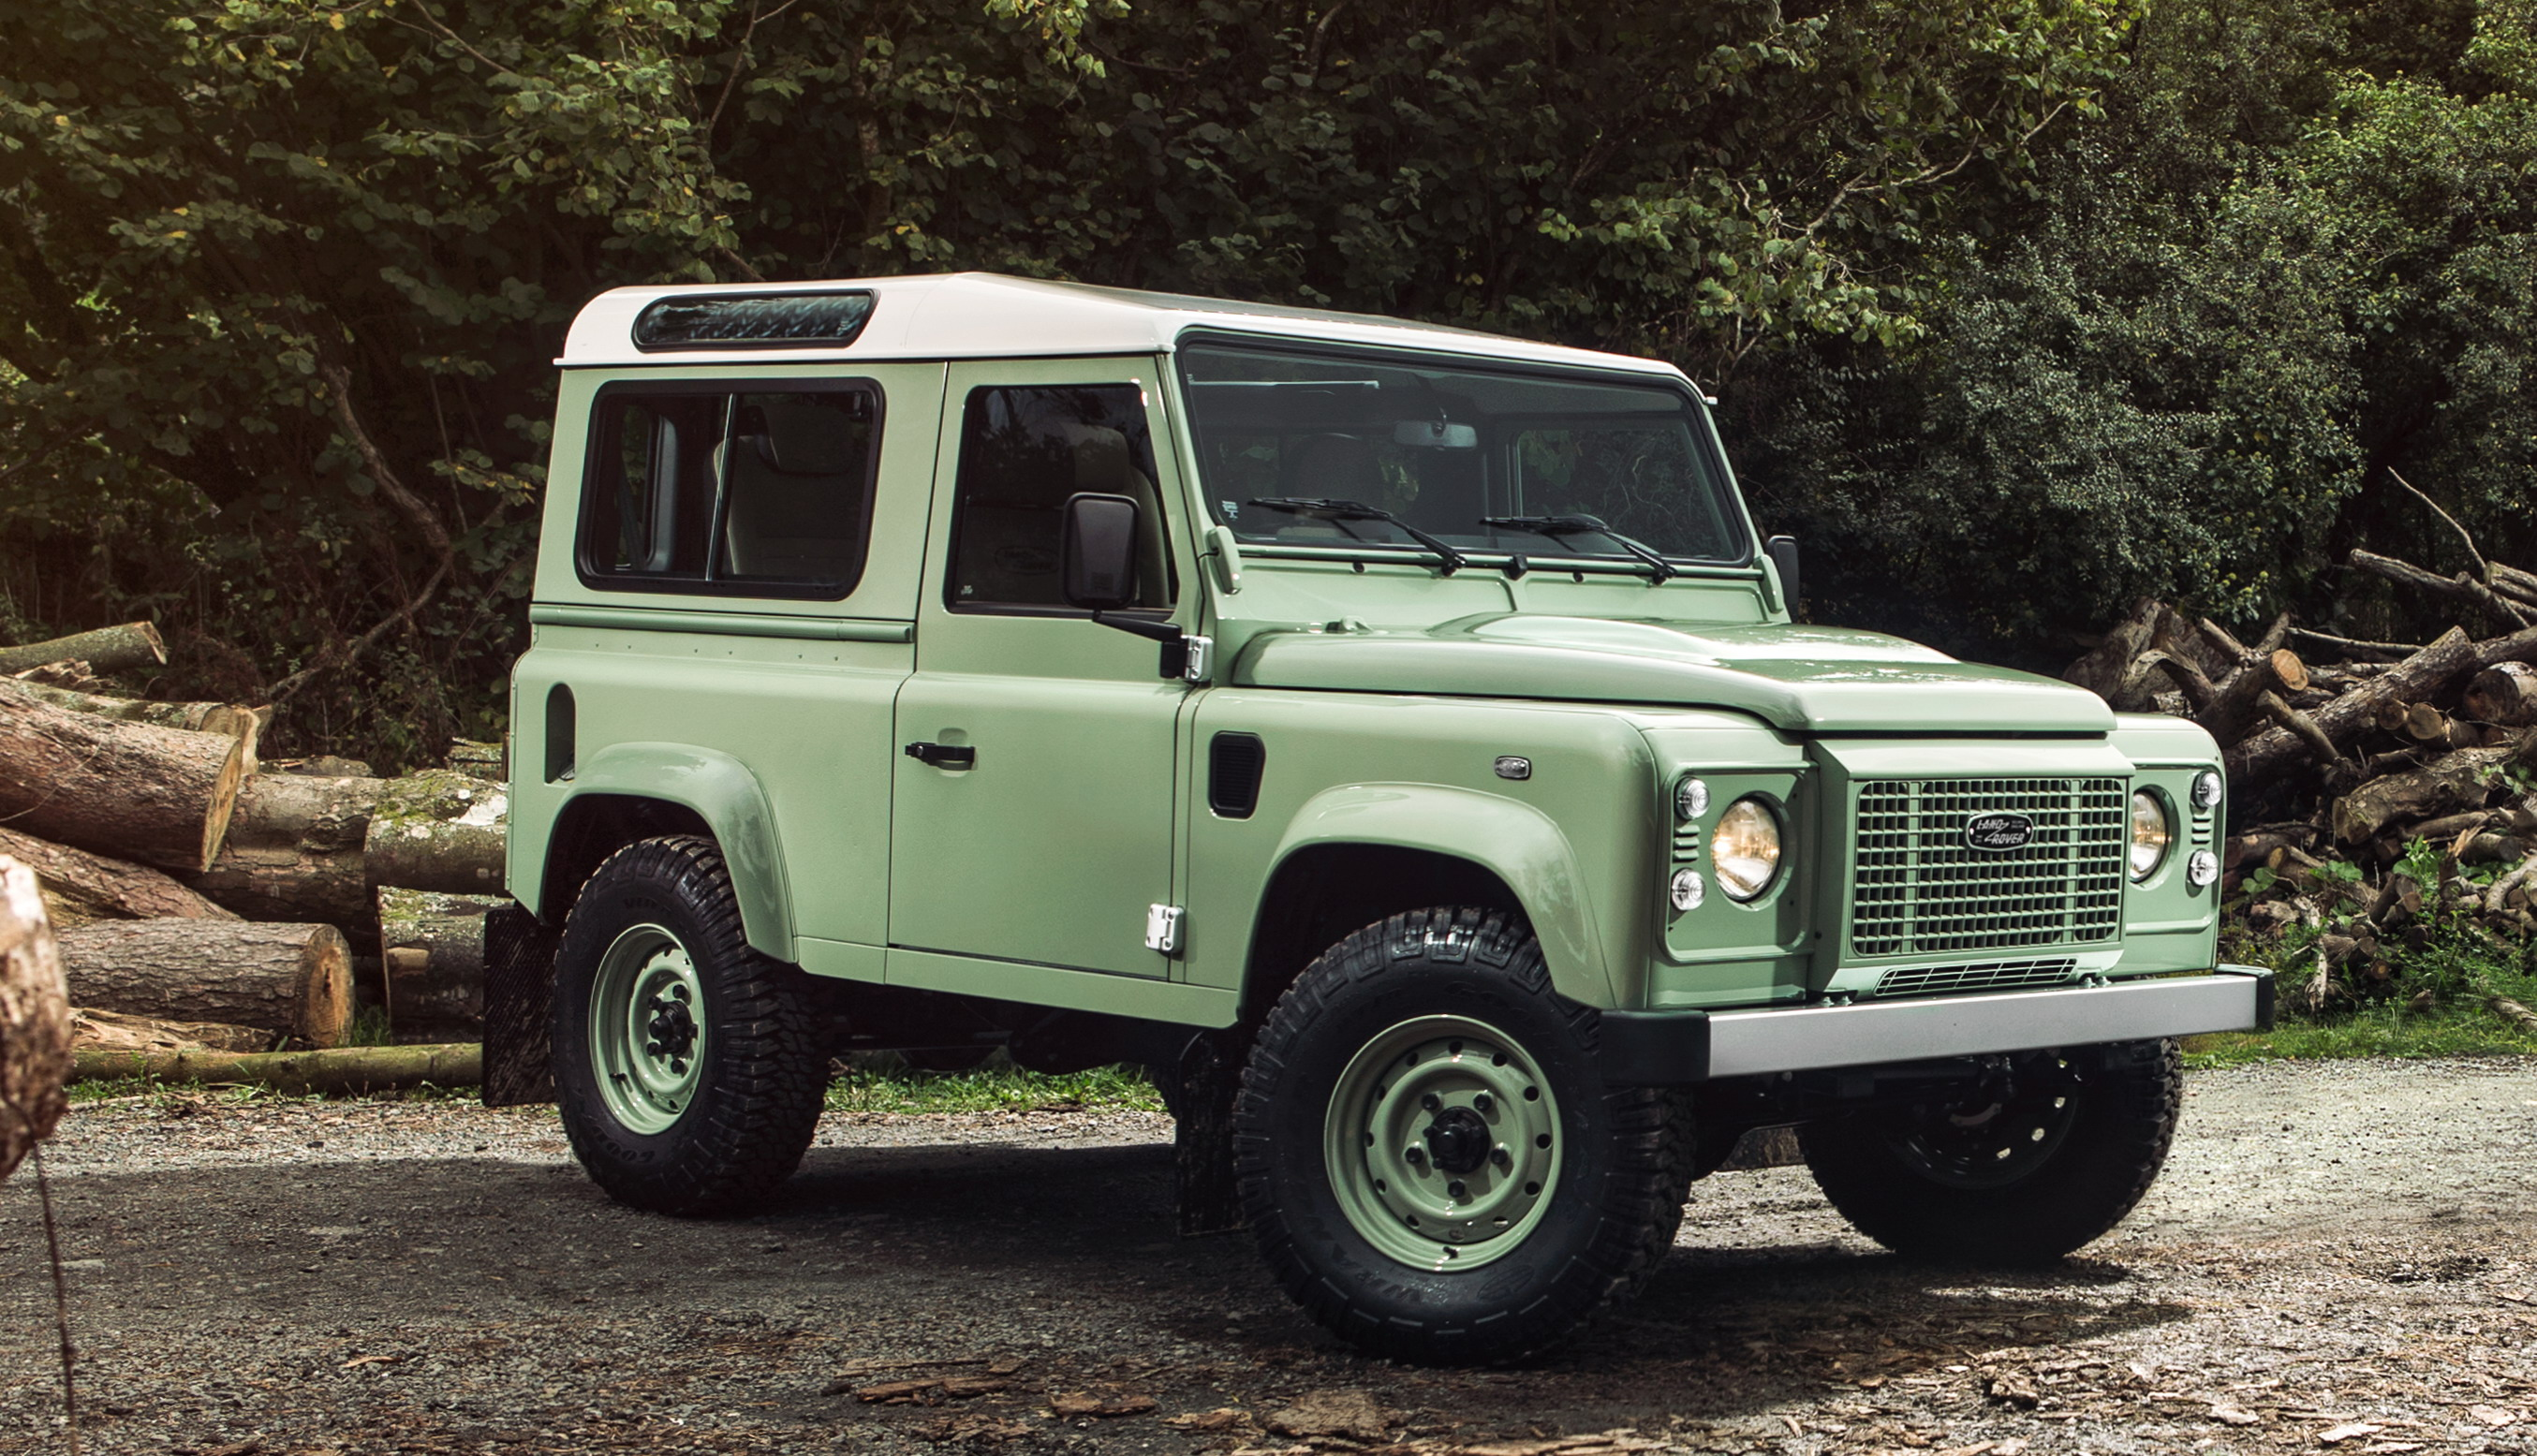 models works celebrate s cost hp url com land carmakers new defender cars reveals wordpress rover files w q hero v anniversary to landrover